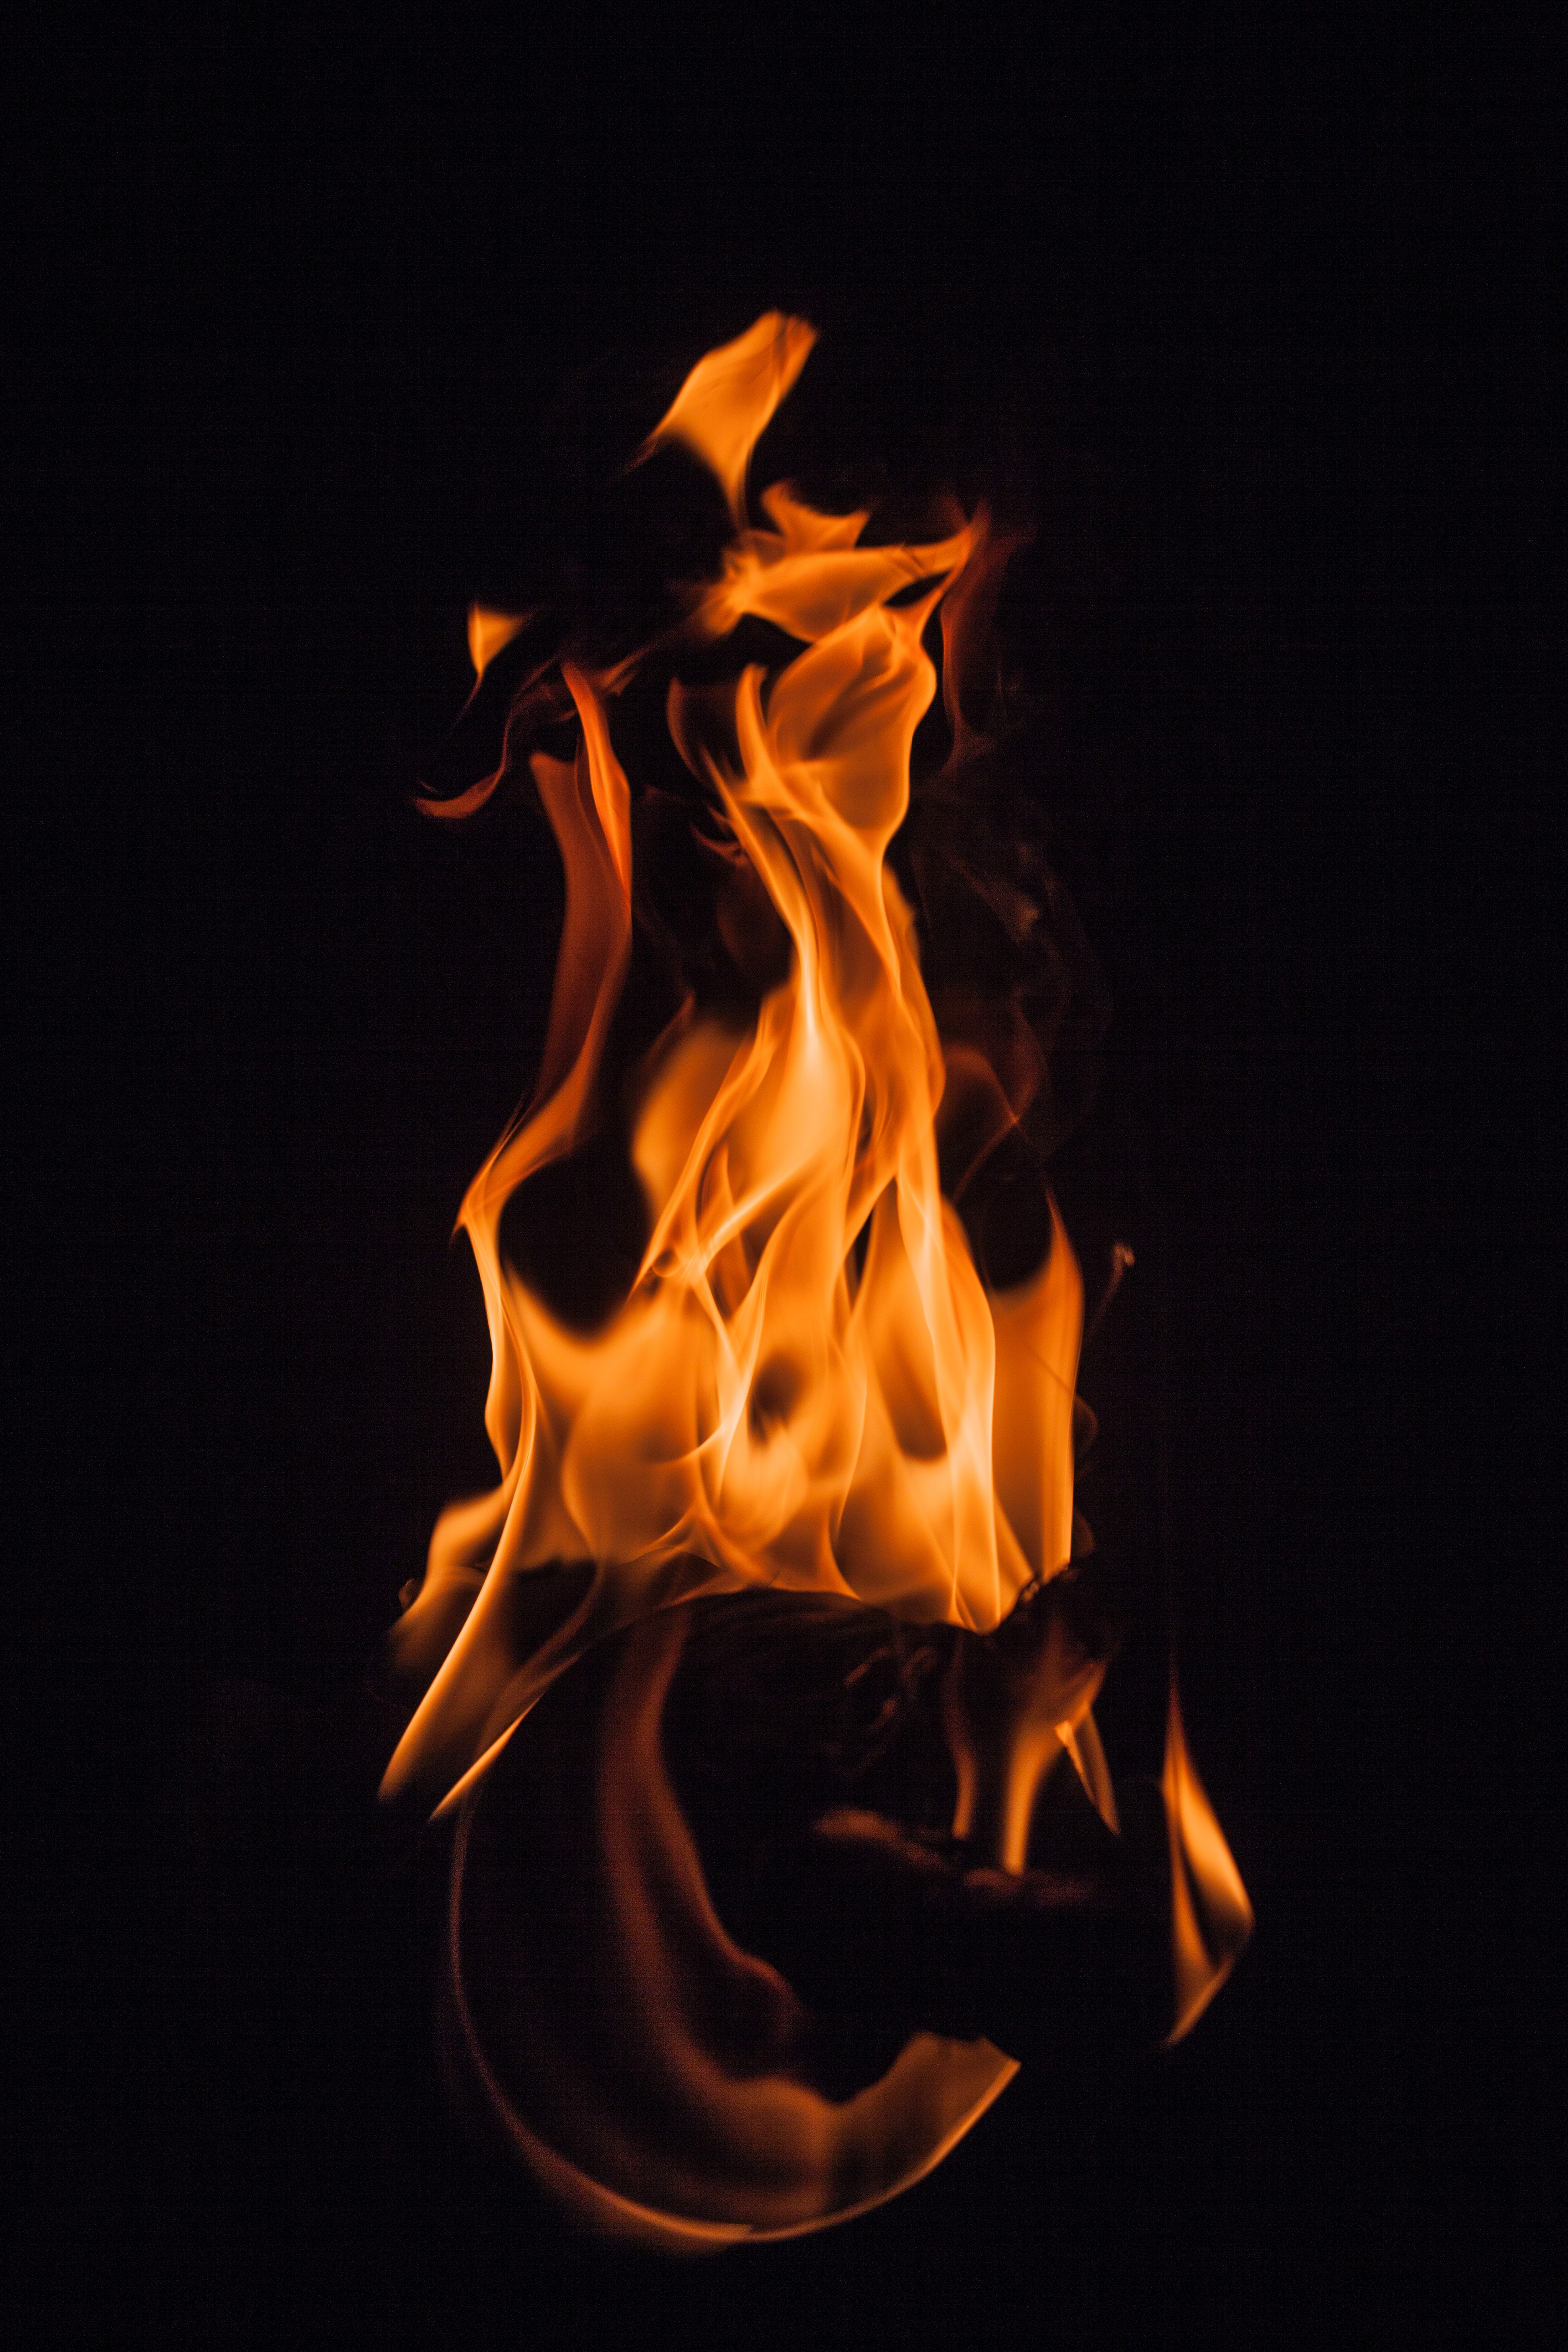 79393 Screensavers and Wallpapers Firewood for phone. Download Fire, Bonfire, Dark, Flame, Darkness, Firewood, Shroud pictures for free